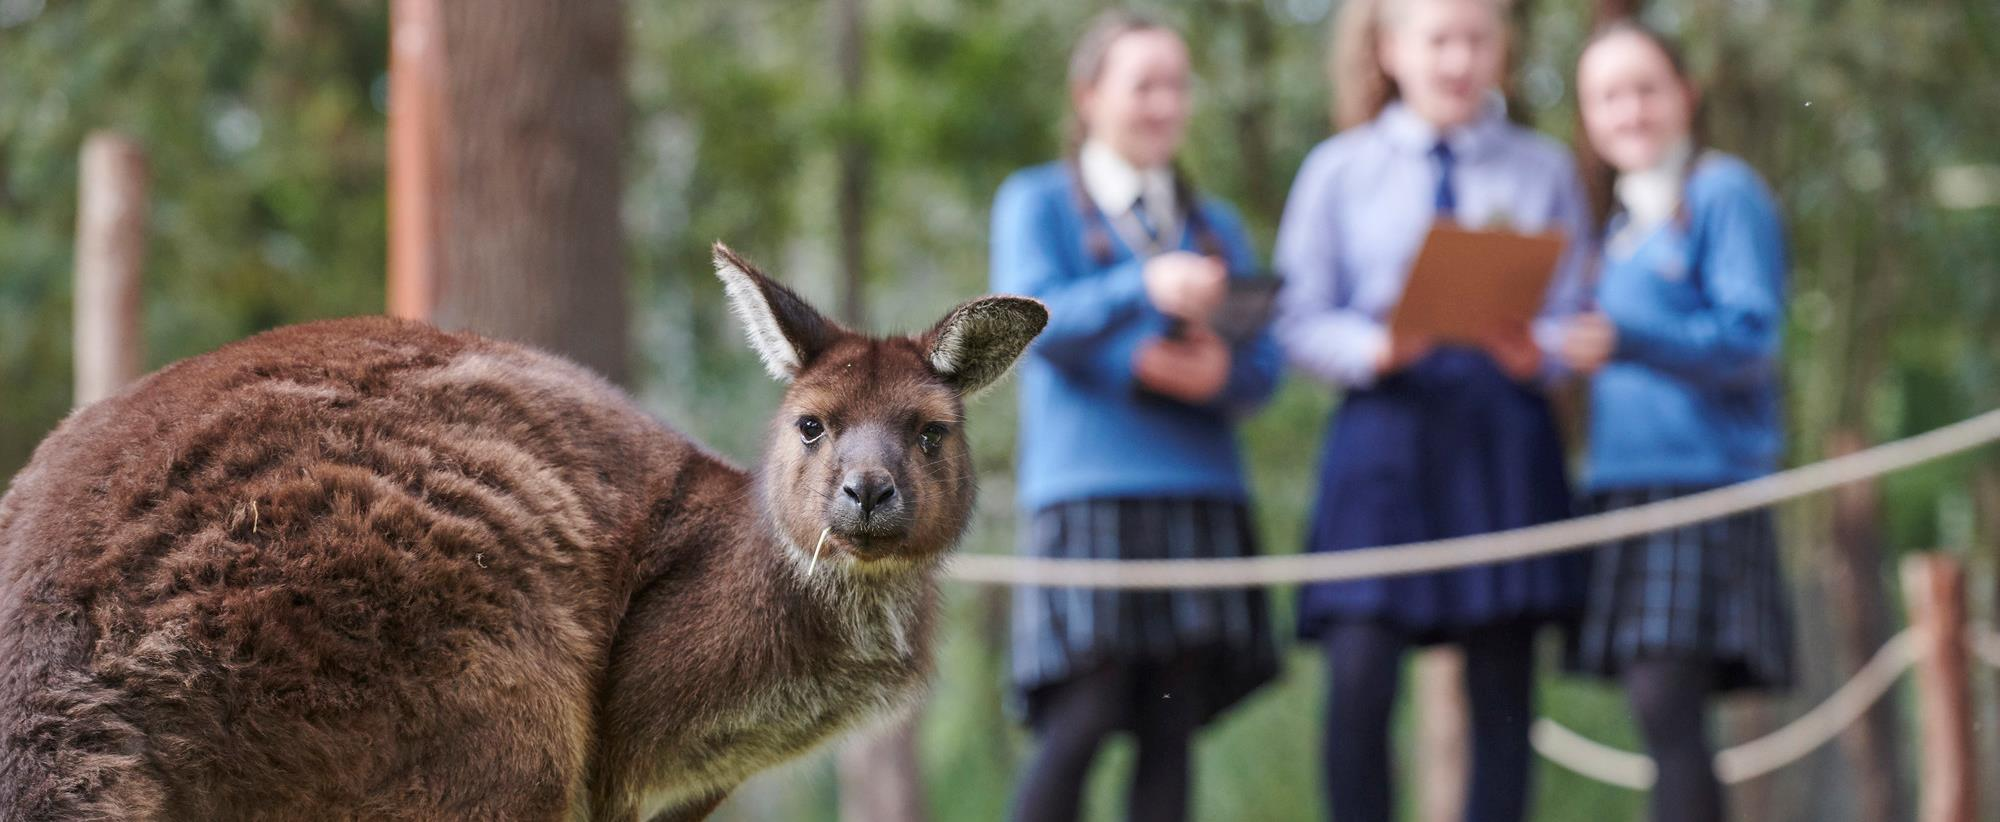 Kangaroo in foreground looking at camera while three students stand in background.